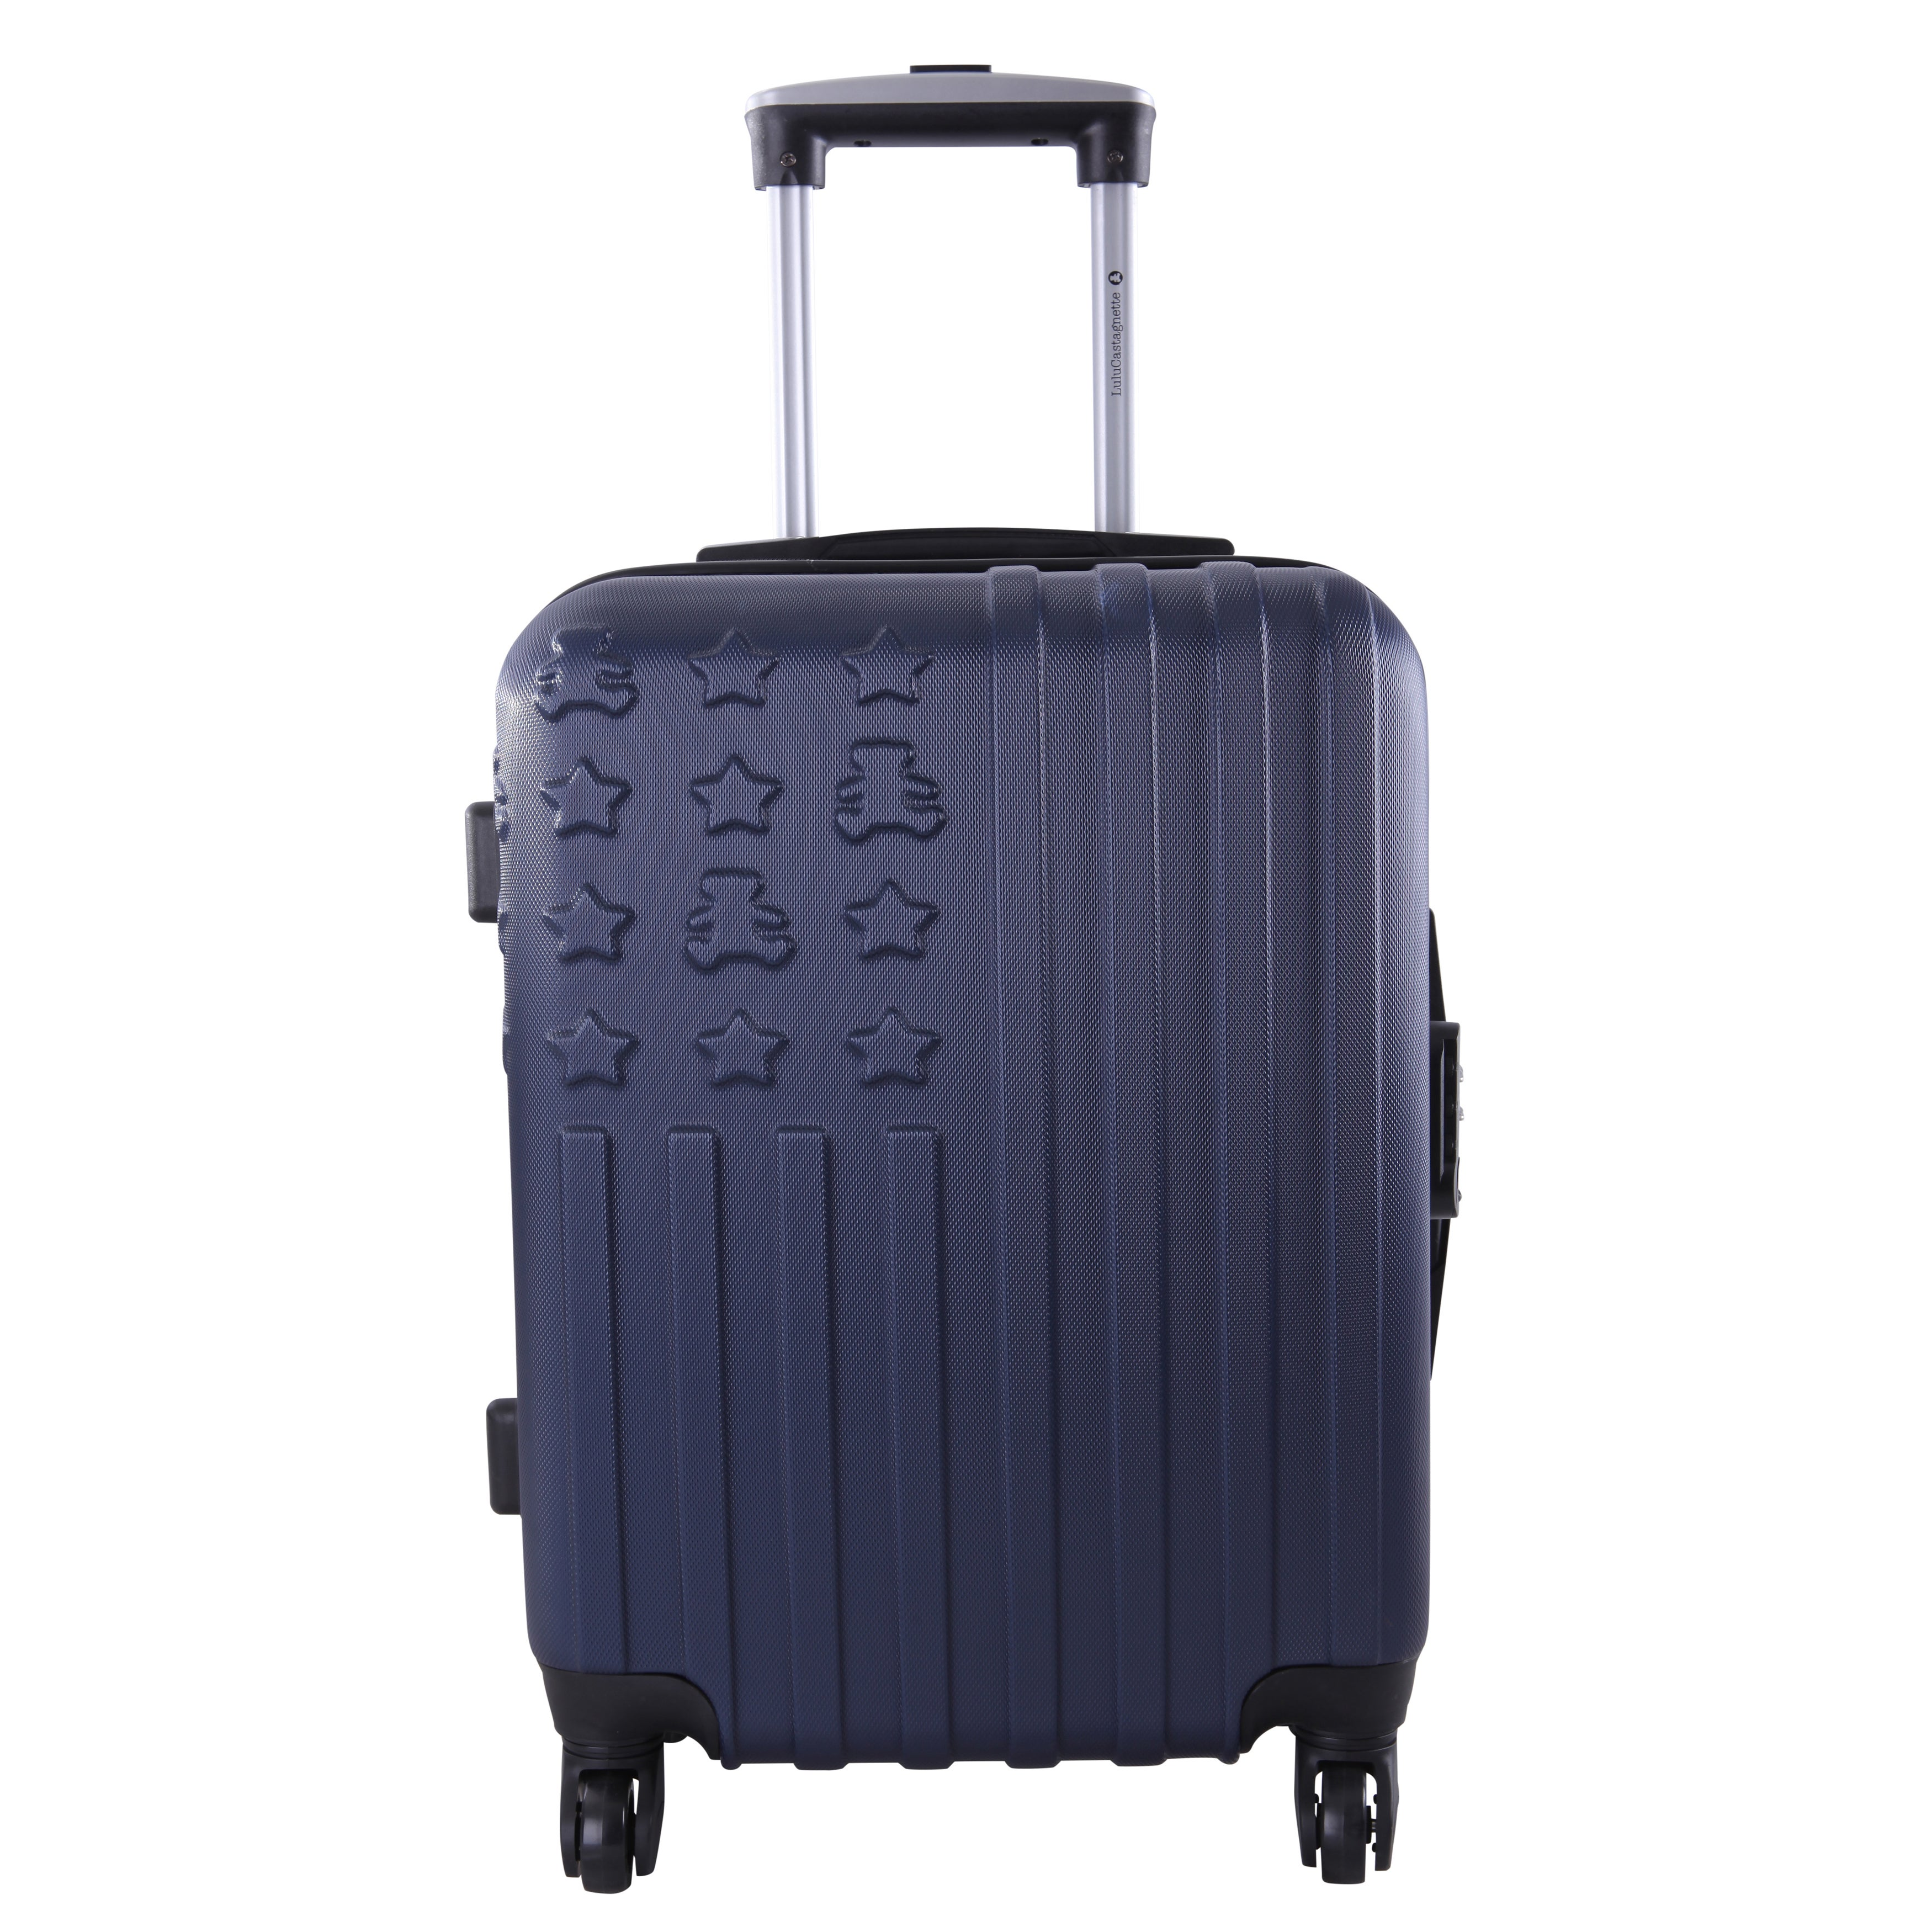 c47d51443 Shop Lulu Castagnette Navy 3-piece Hardside Spinner Luggage Set - Free  Shipping Today - Overstock - 12135528